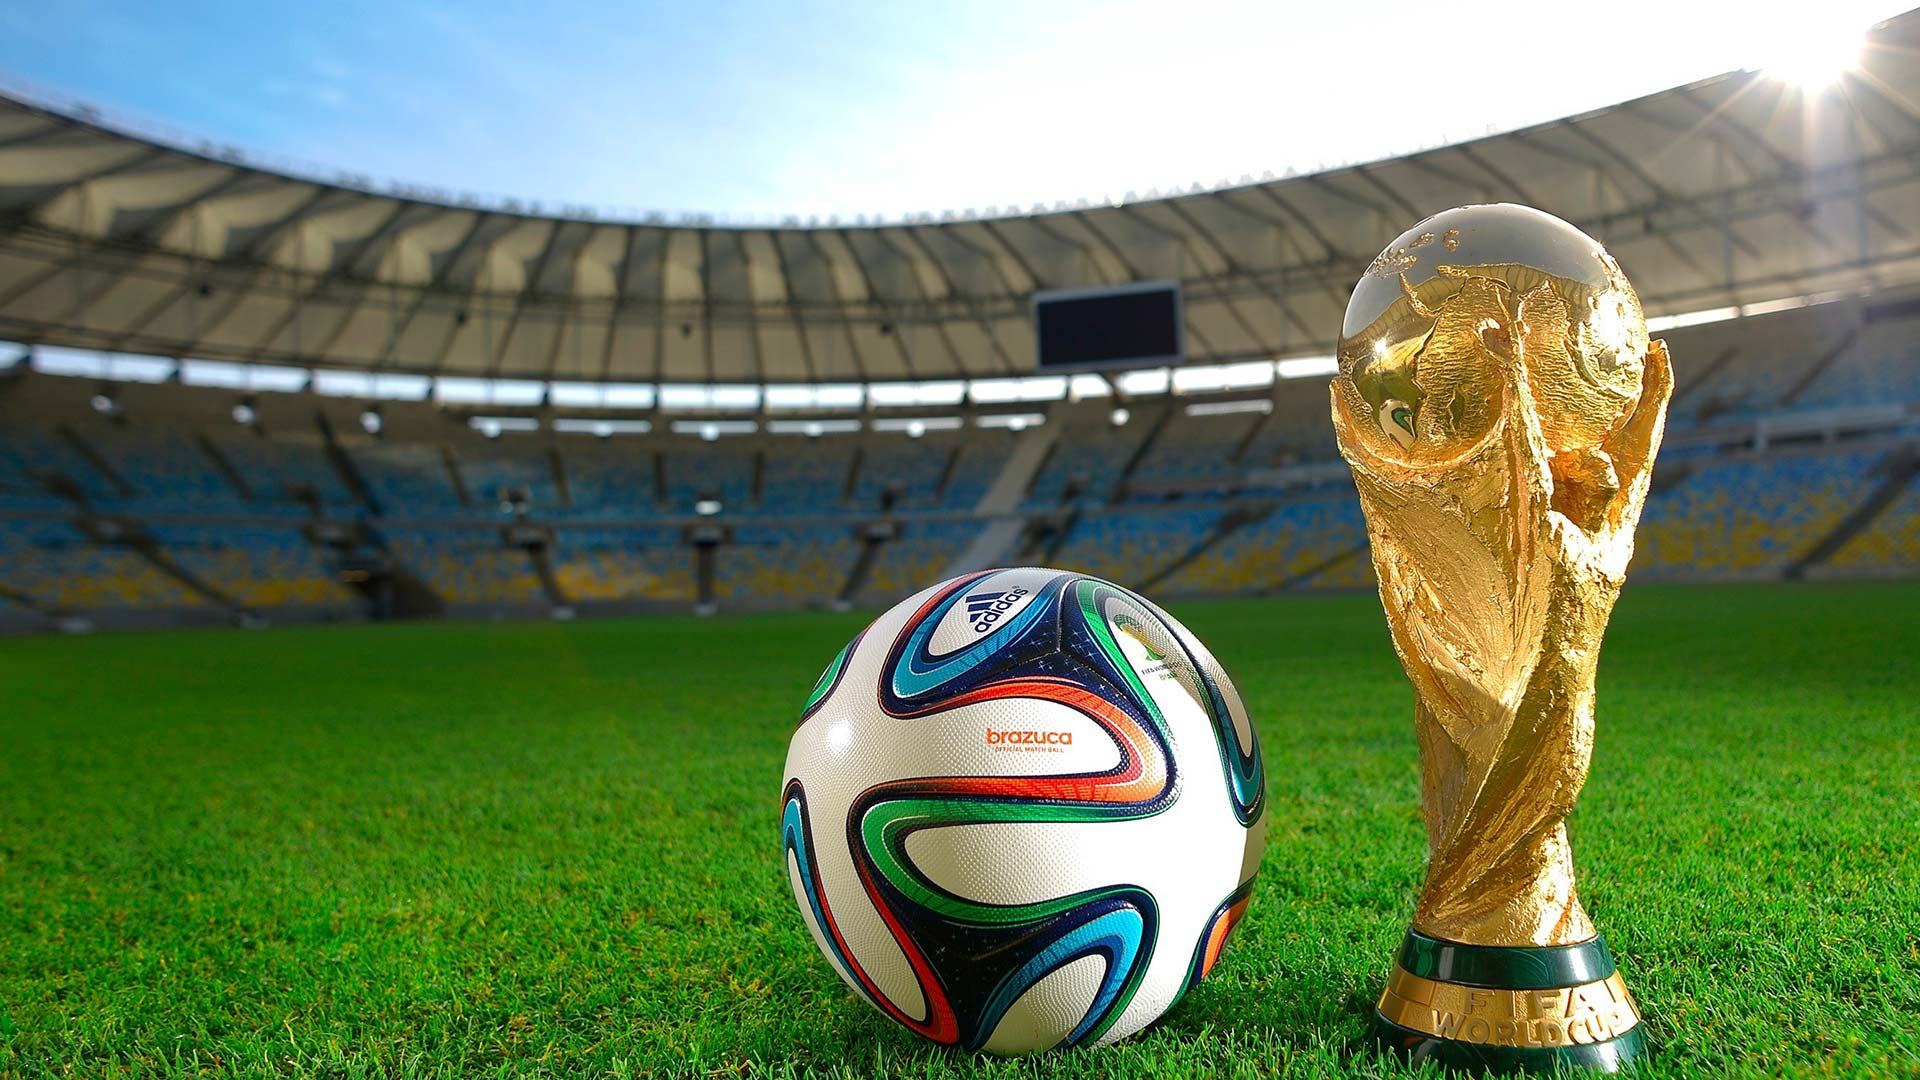 The Uruguayans have won the football World Cup in 1930 and in 1950.